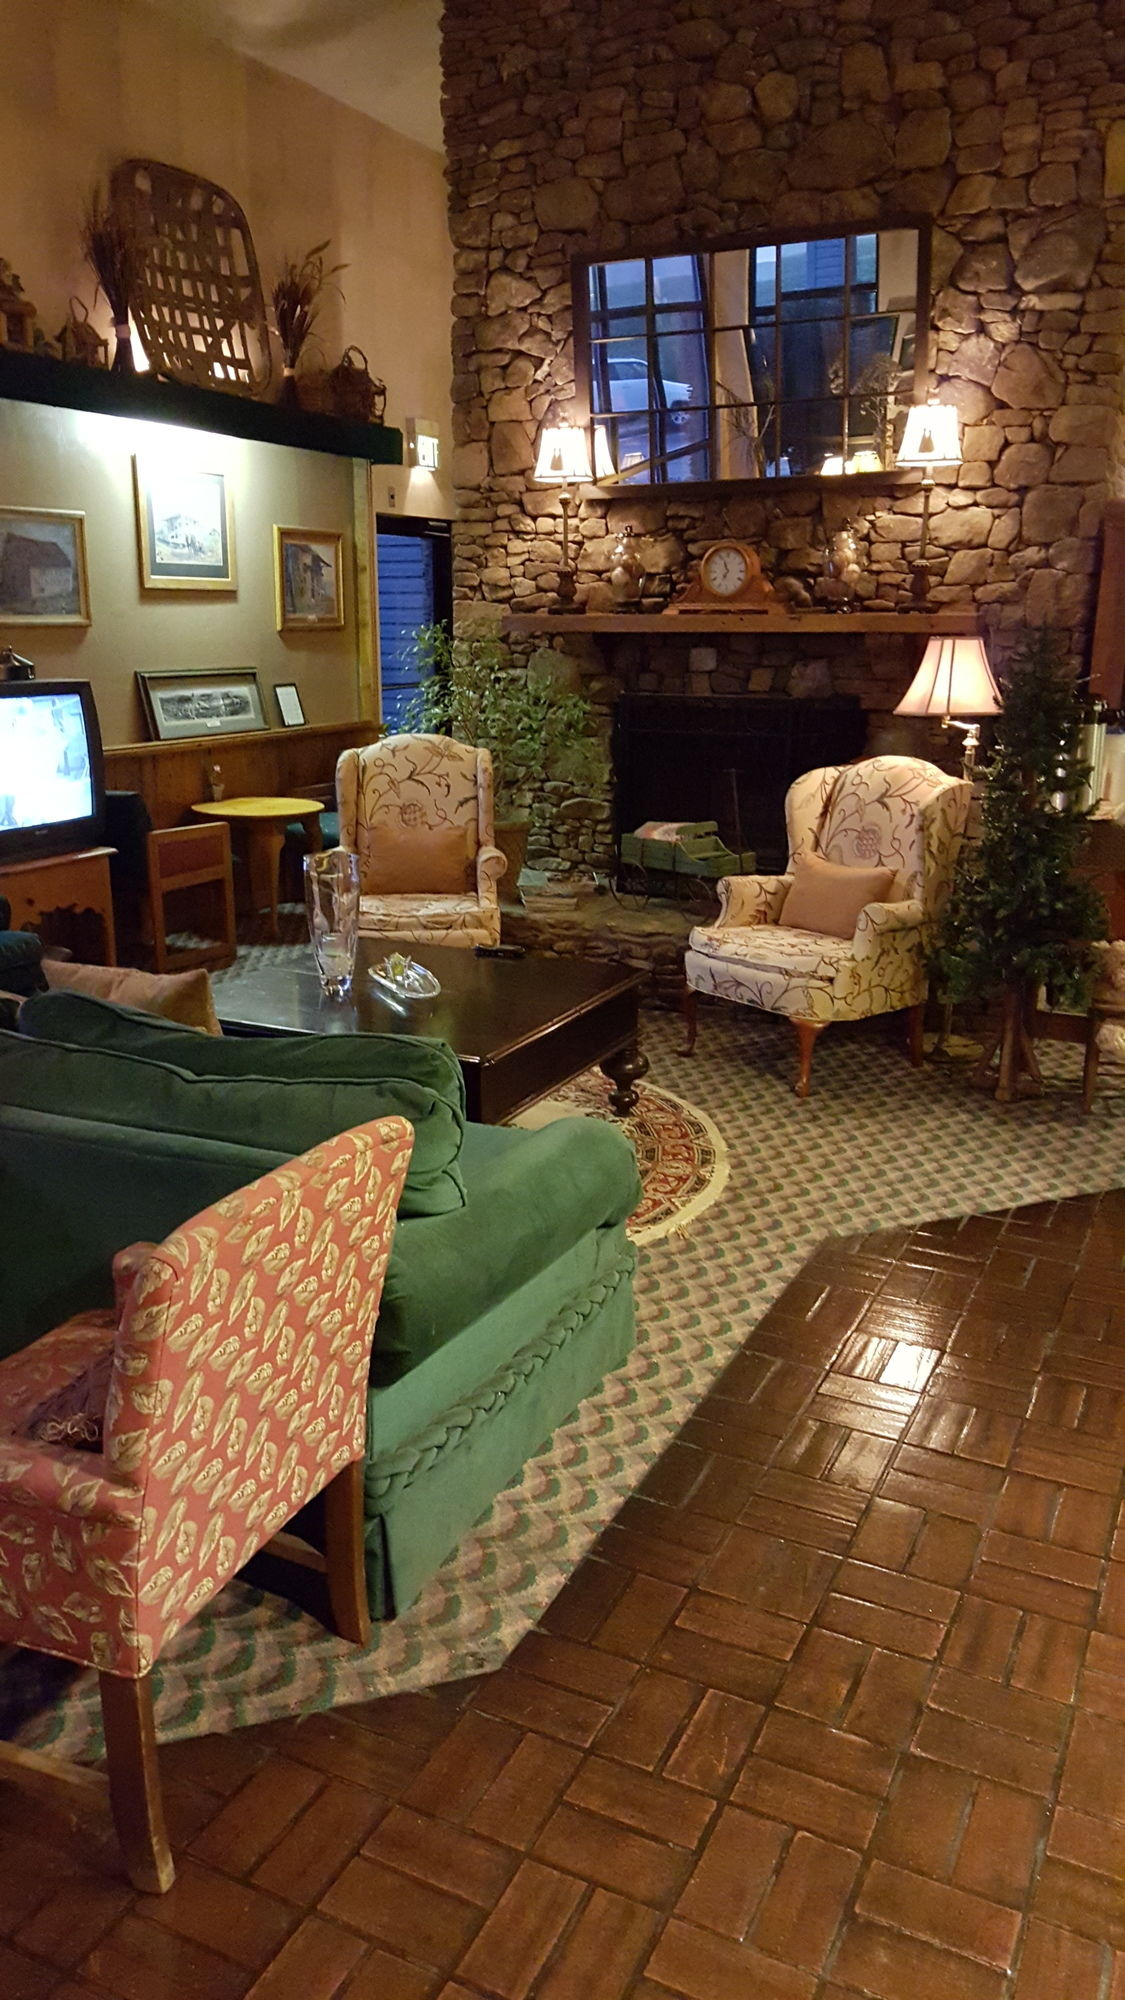 Americourt Hotel in Mountain City, TN